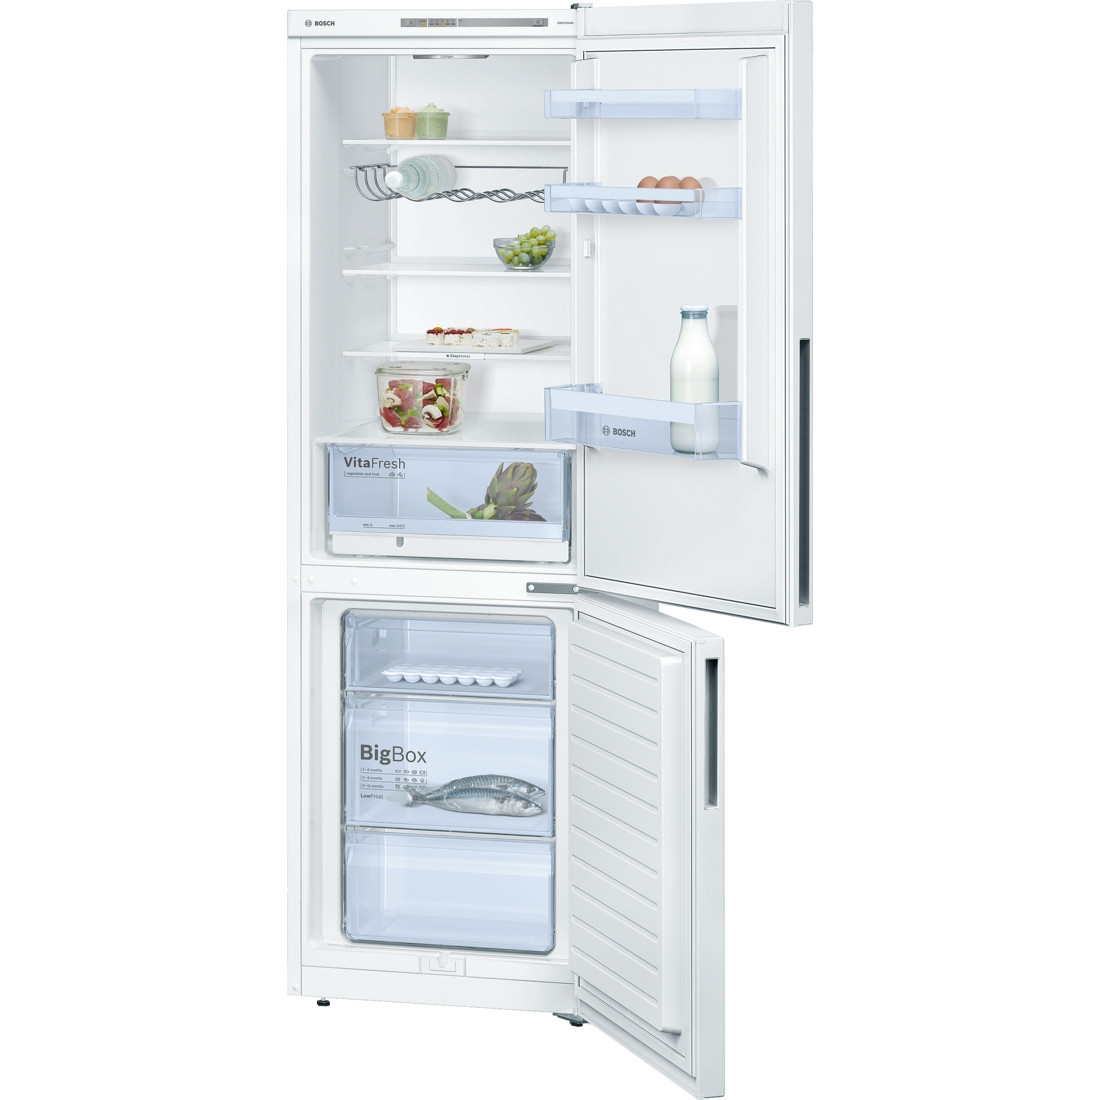 Bosch Serie 4 KGV36VW32G Freestanding White Fridge Freezer